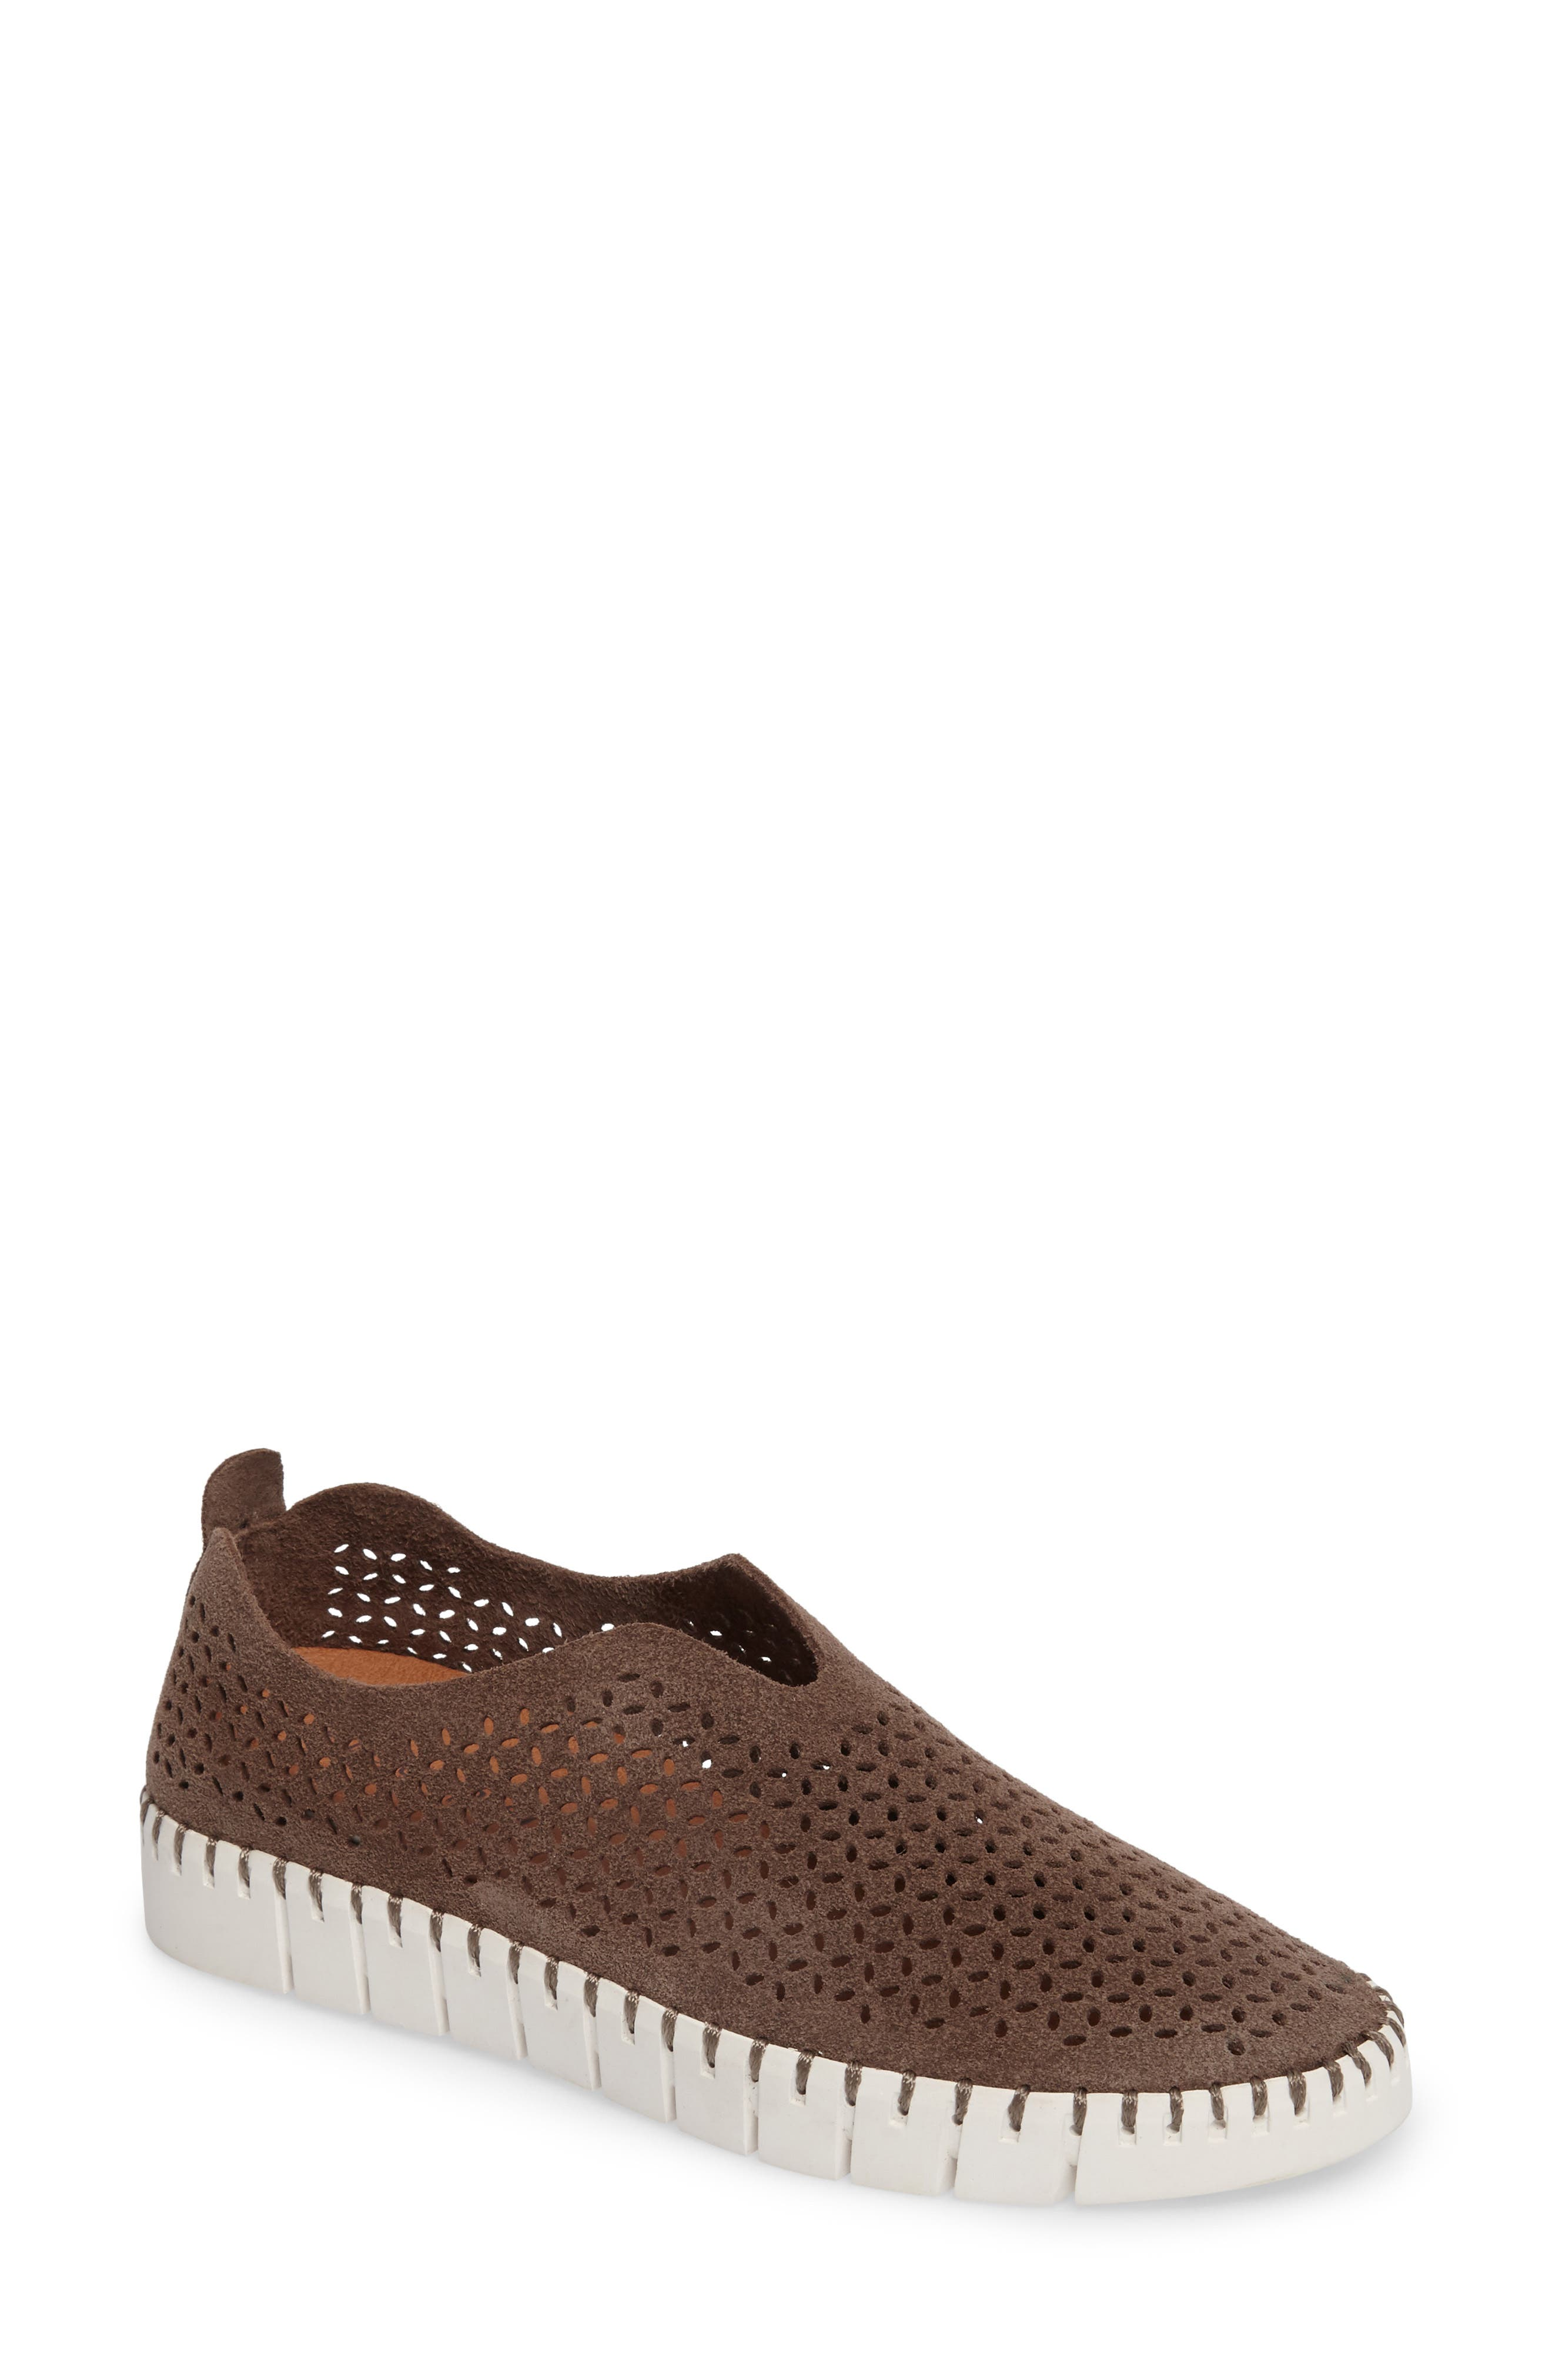 Main Image - Jeffrey Campbell Tiles Perforated Slip-On Sneaker (Women)